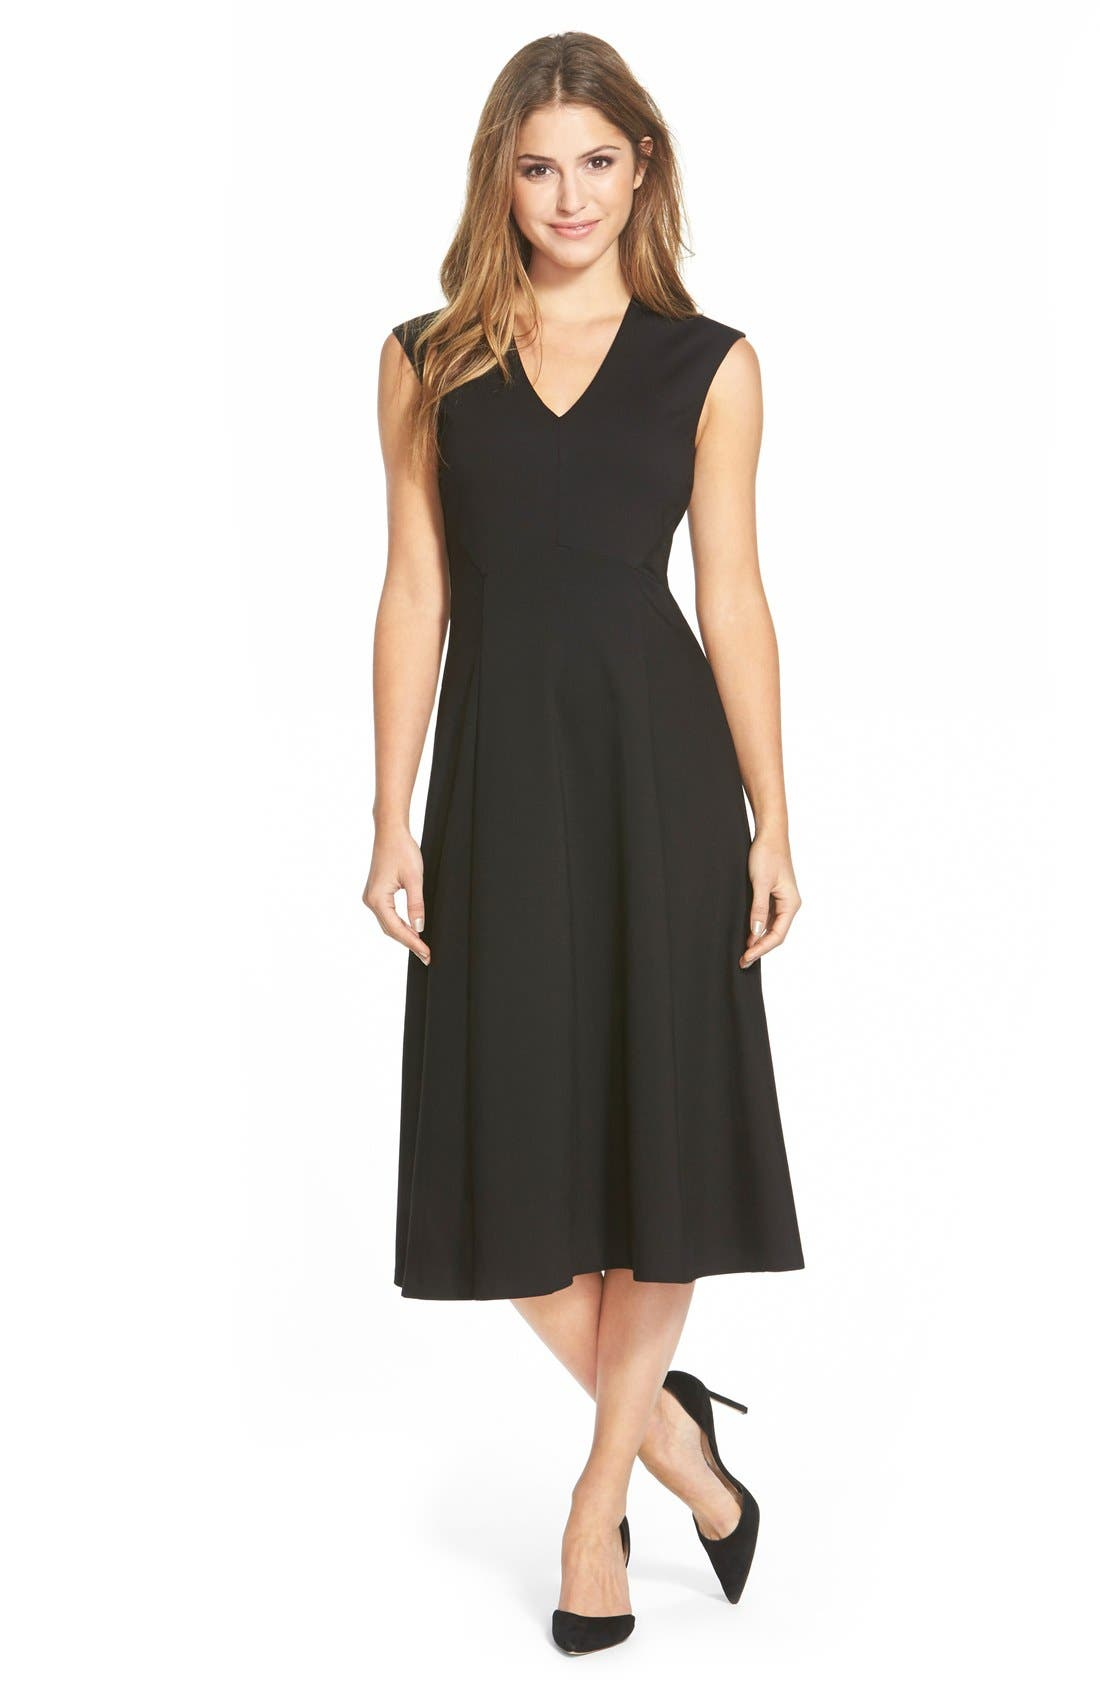 HALOGEN<SUP>®</SUP>, Sleeveless Fit & Flare Midi Dress, Main thumbnail 1, color, 001